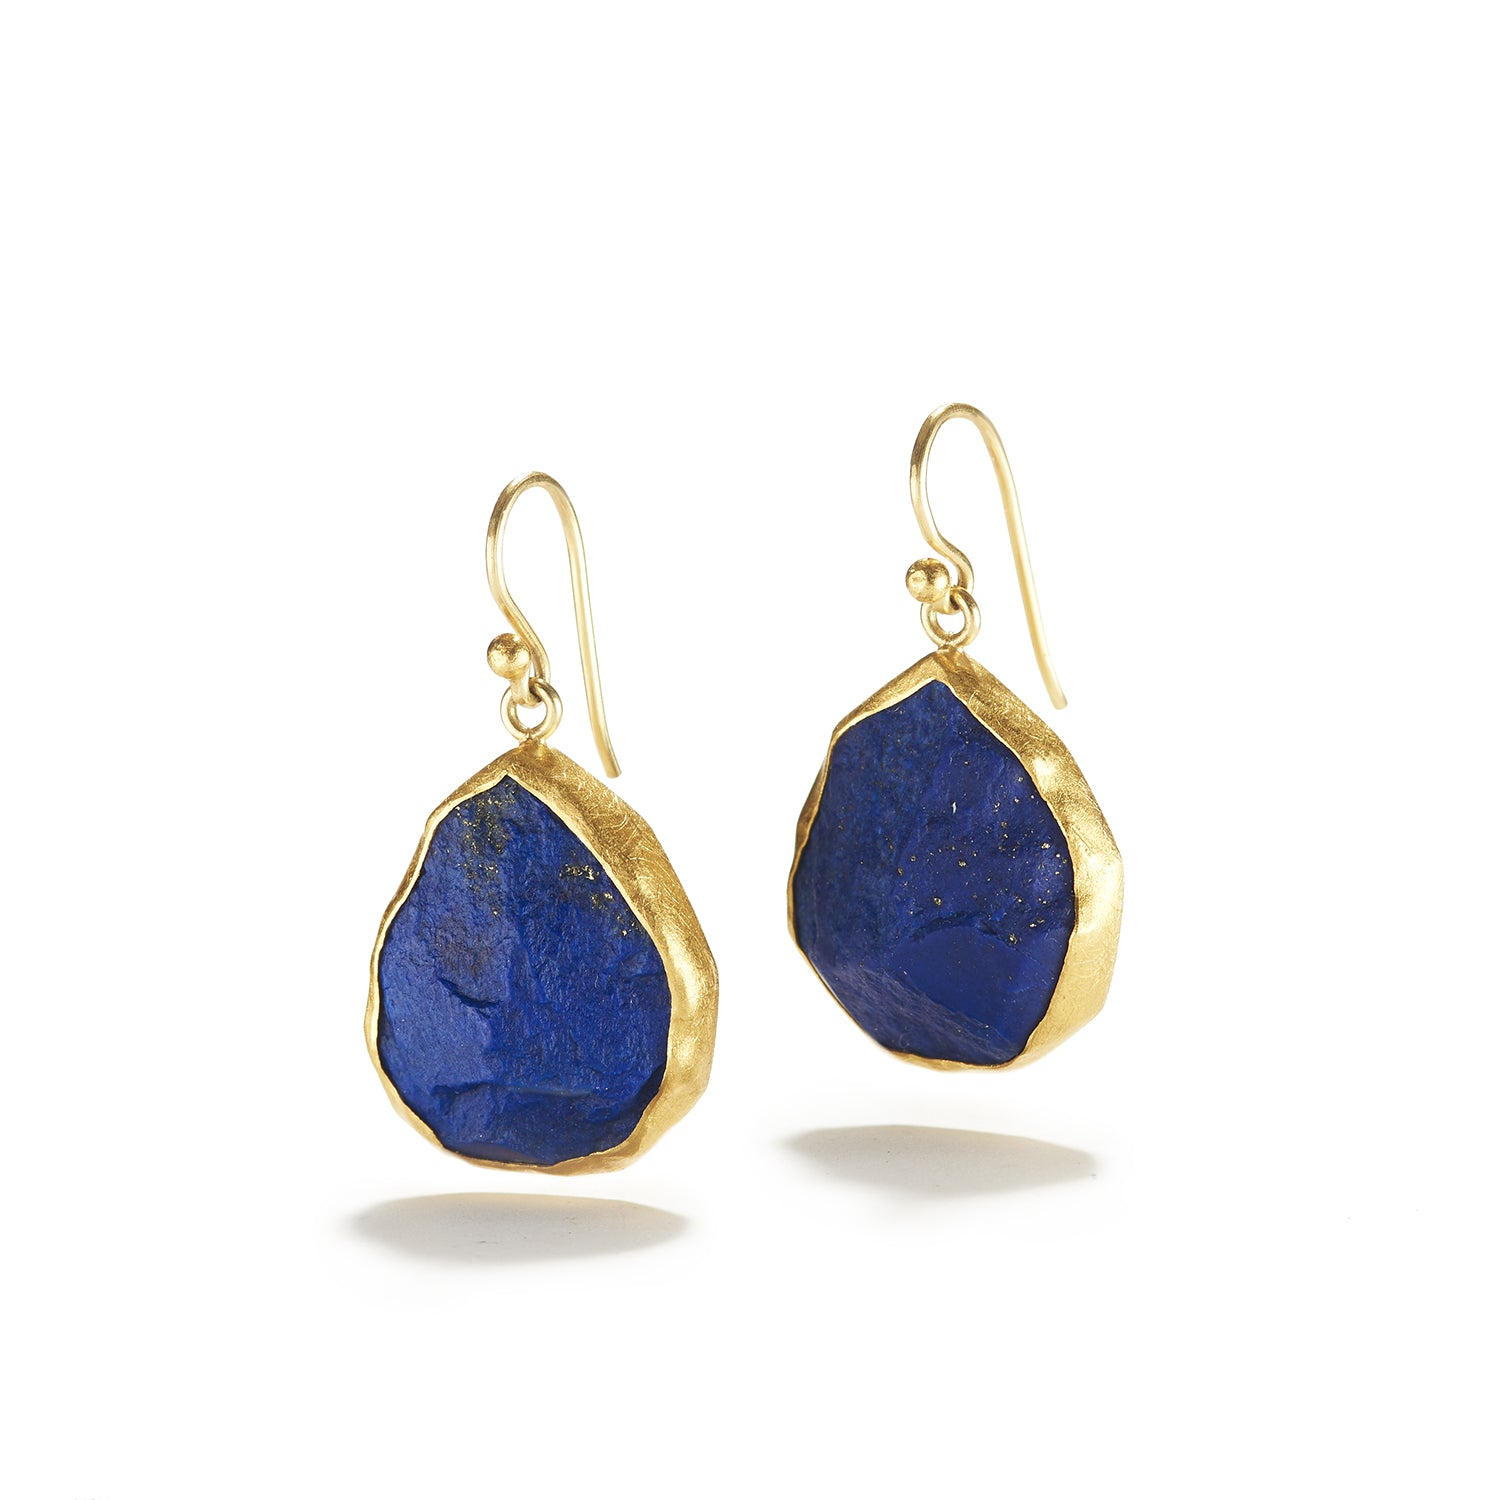 Rough Lapis Lazuli Drops on Wire Earrings